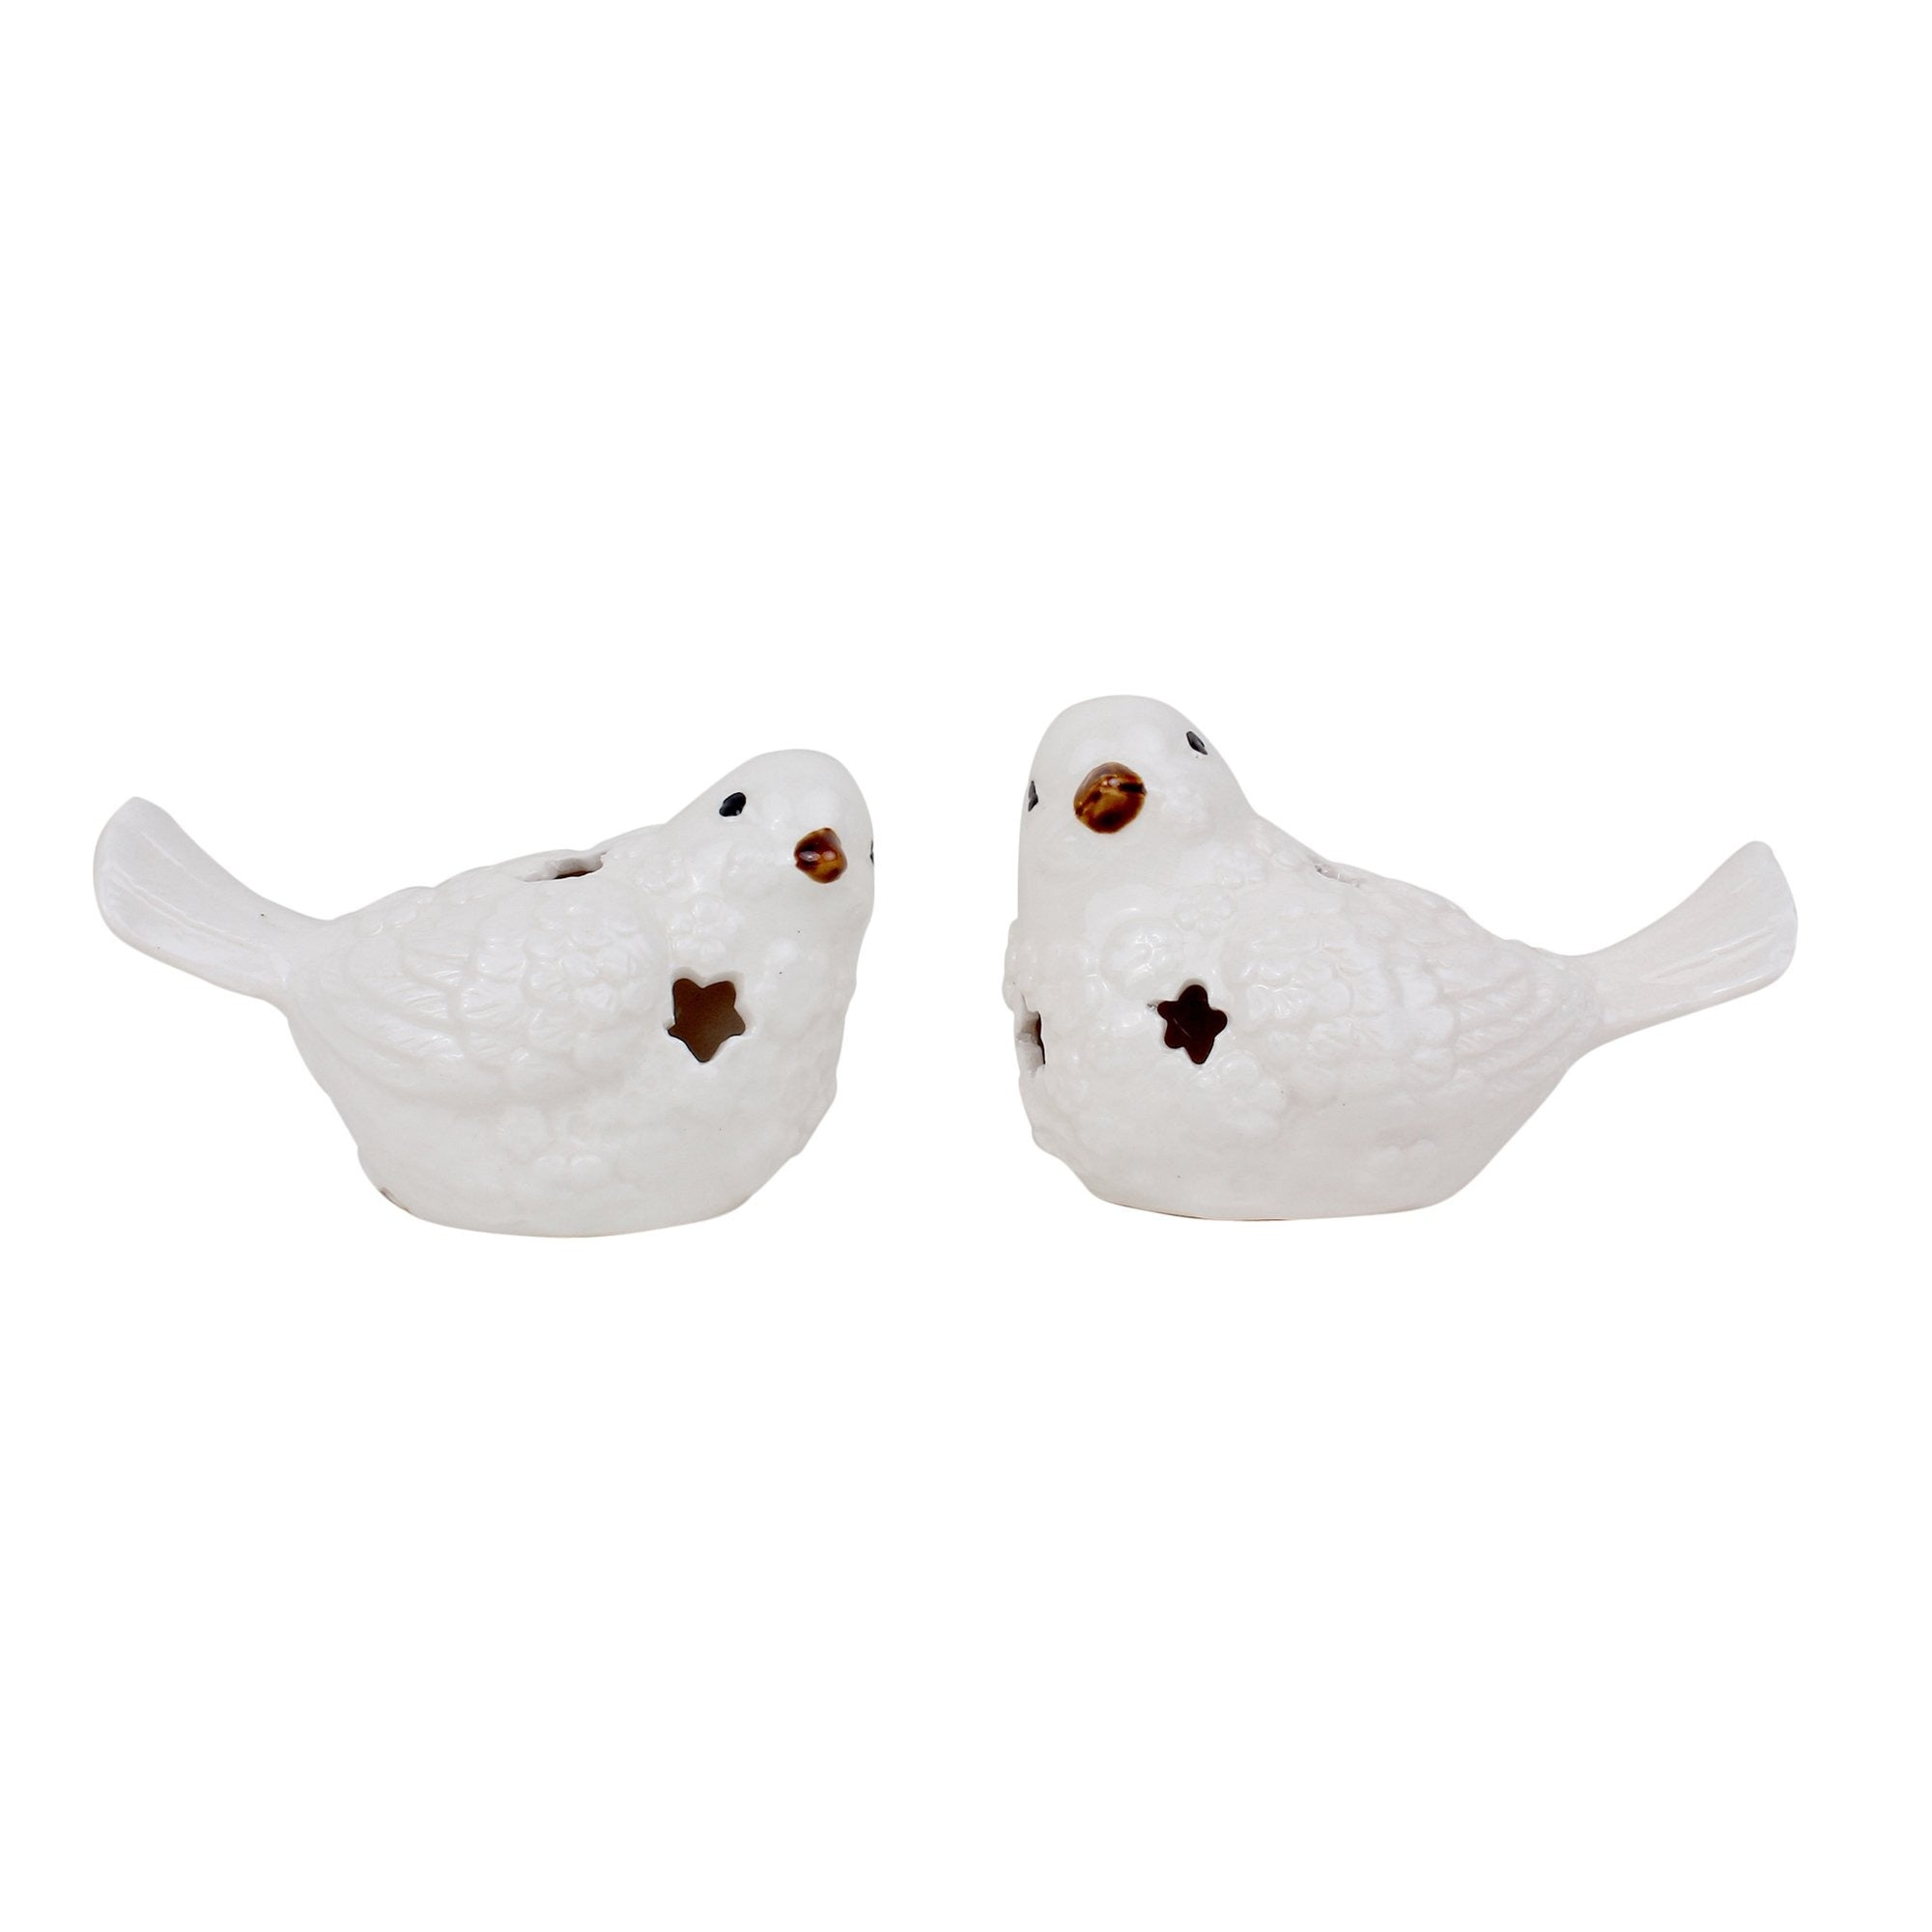 Birdies - Set of 2 (White) - Teak Tale